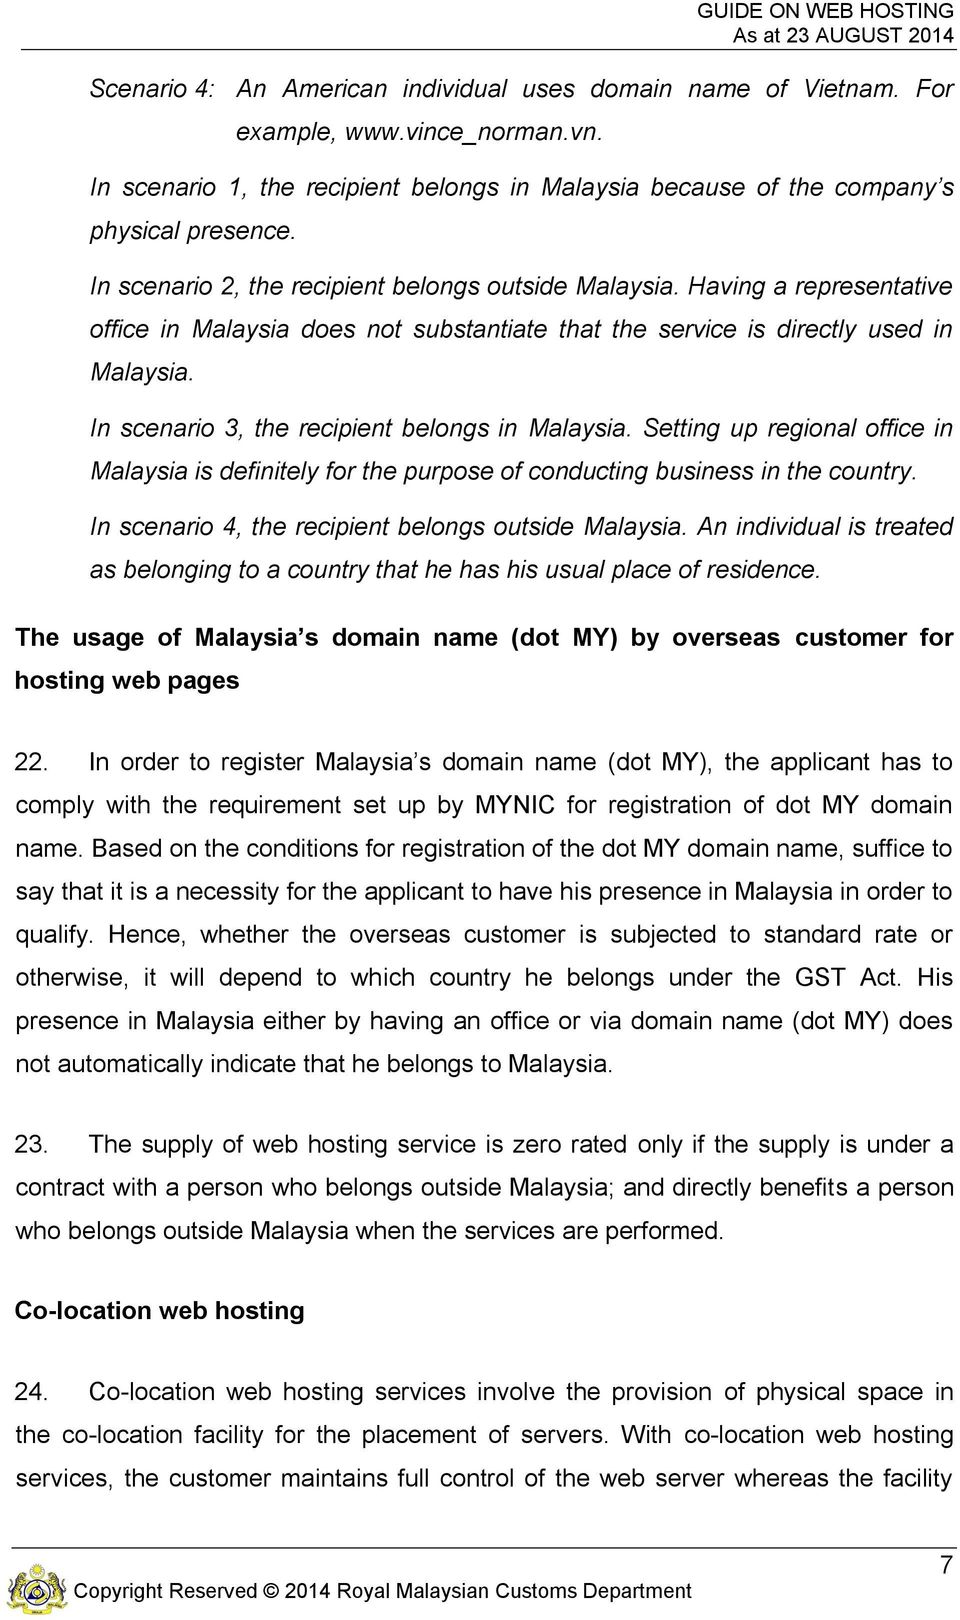 In scenario 3, the recipient belongs in Malaysia. Setting up regional office in Malaysia is definitely for the purpose of conducting business in the country.